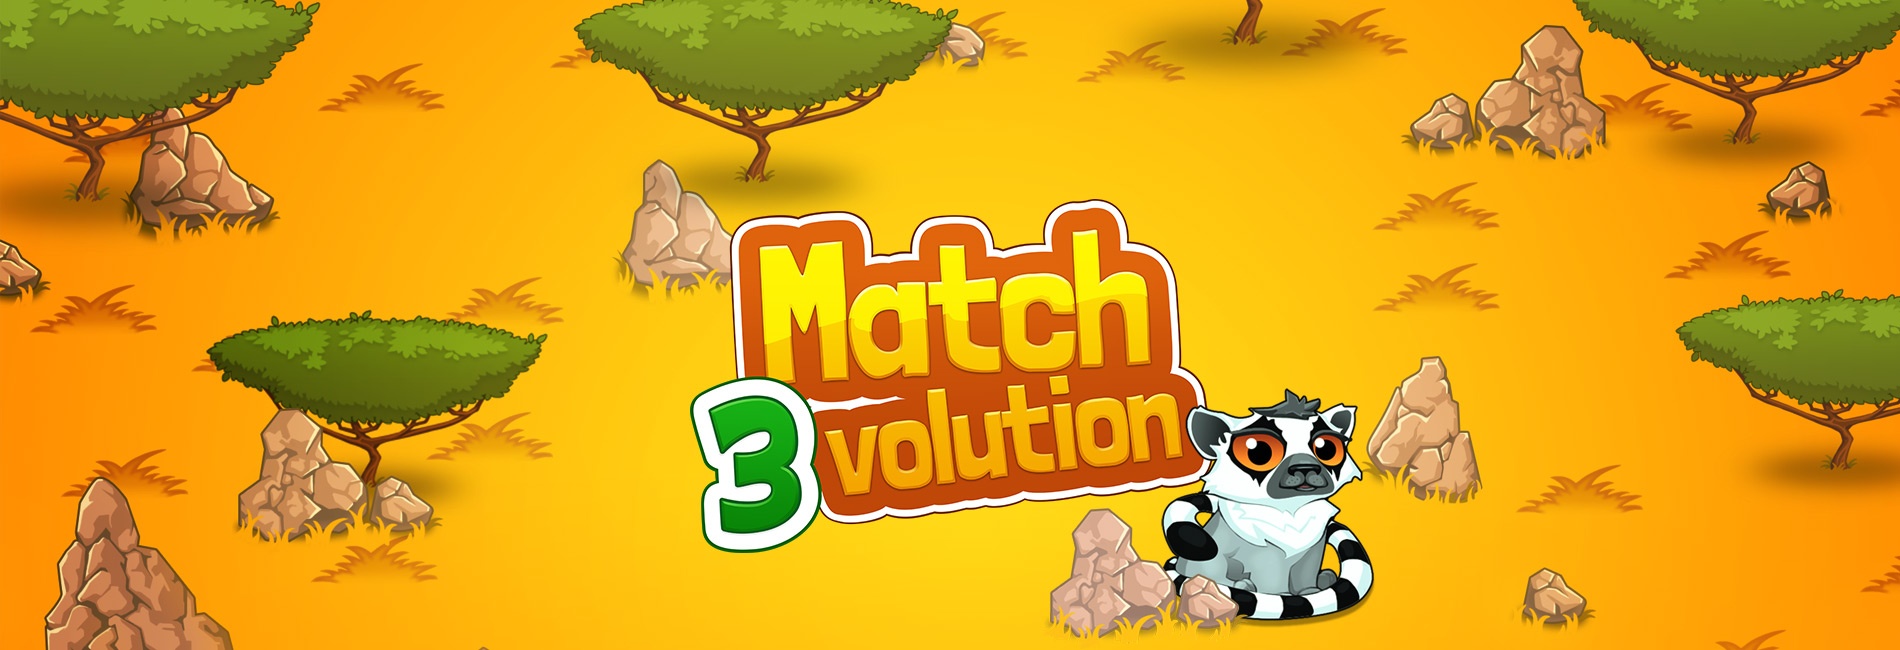 Match 3volution